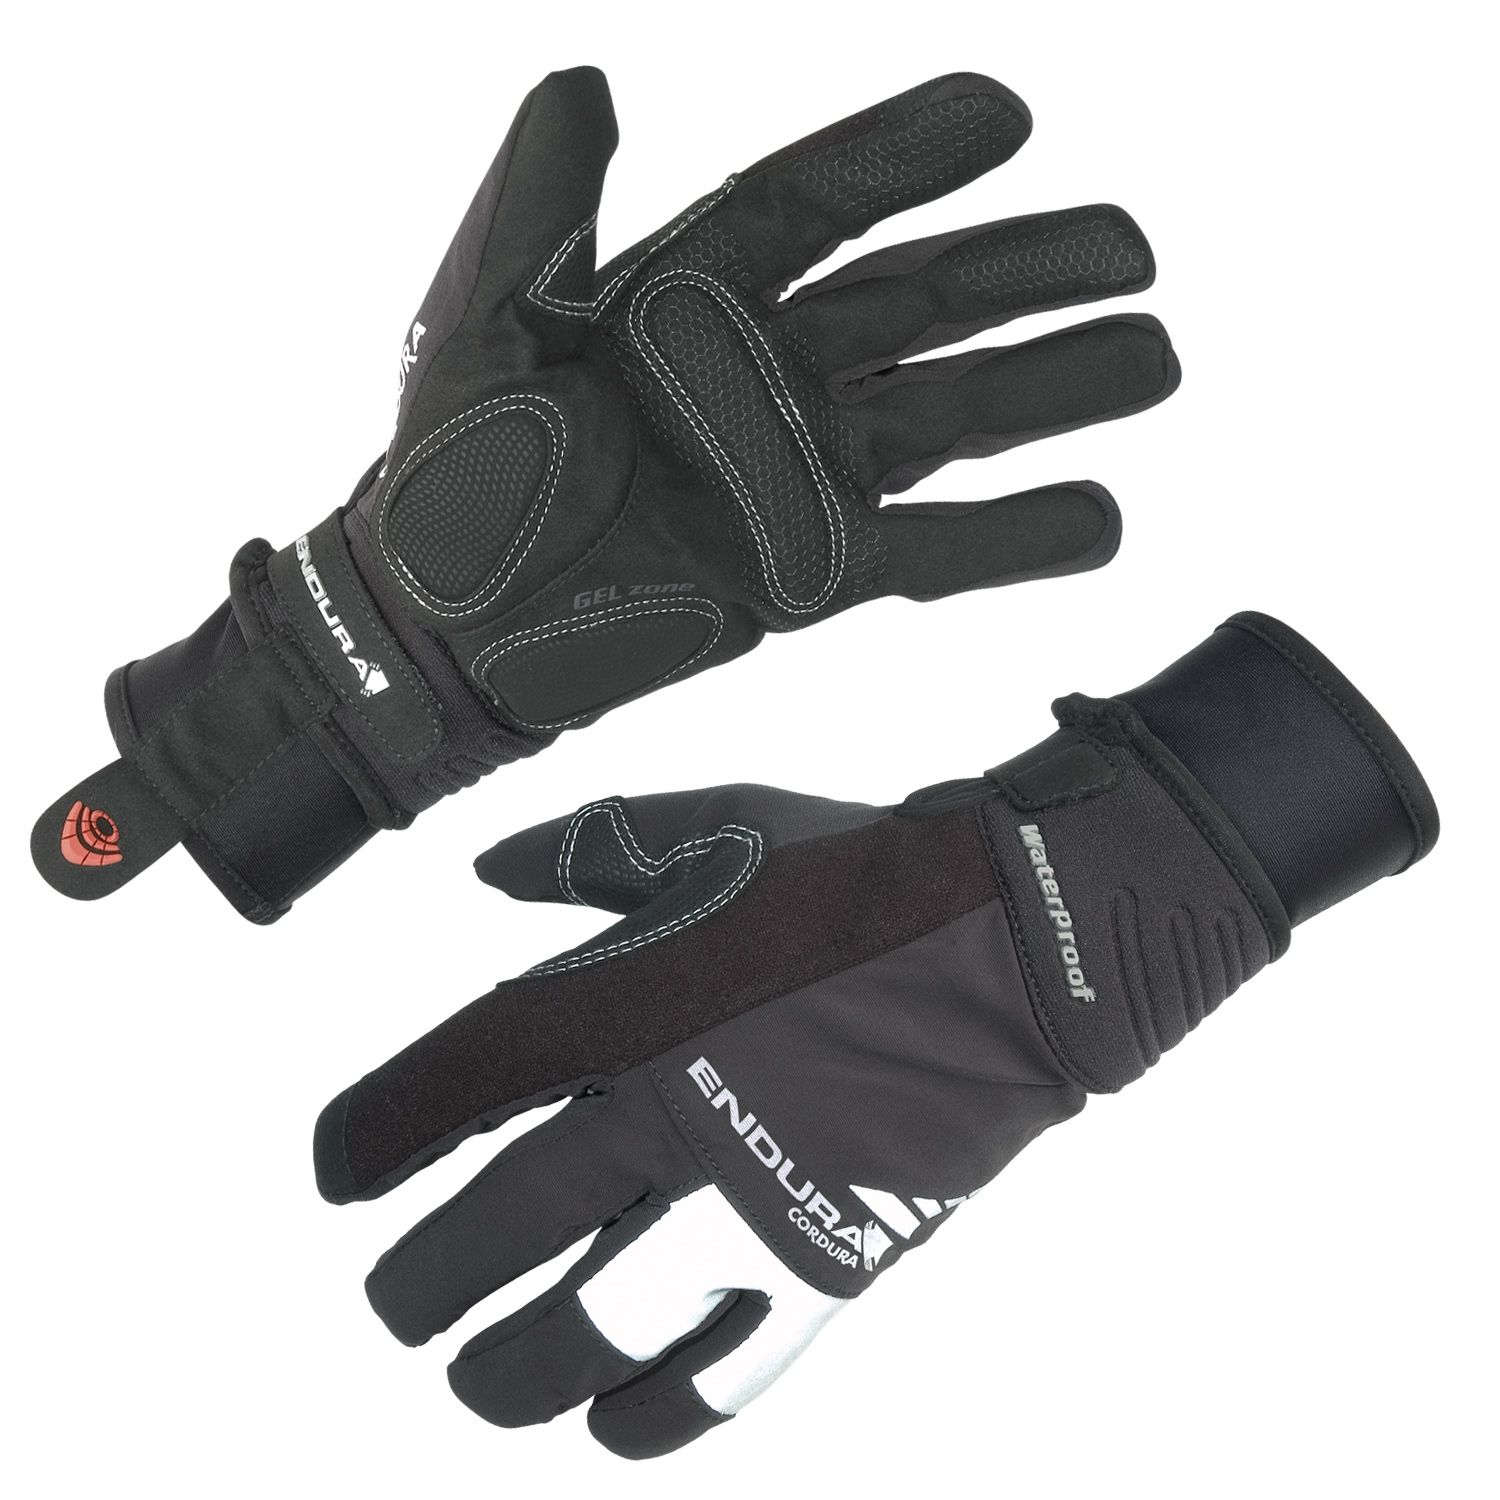 Gloves thermo roubaix winter cycling glove by endura buy it